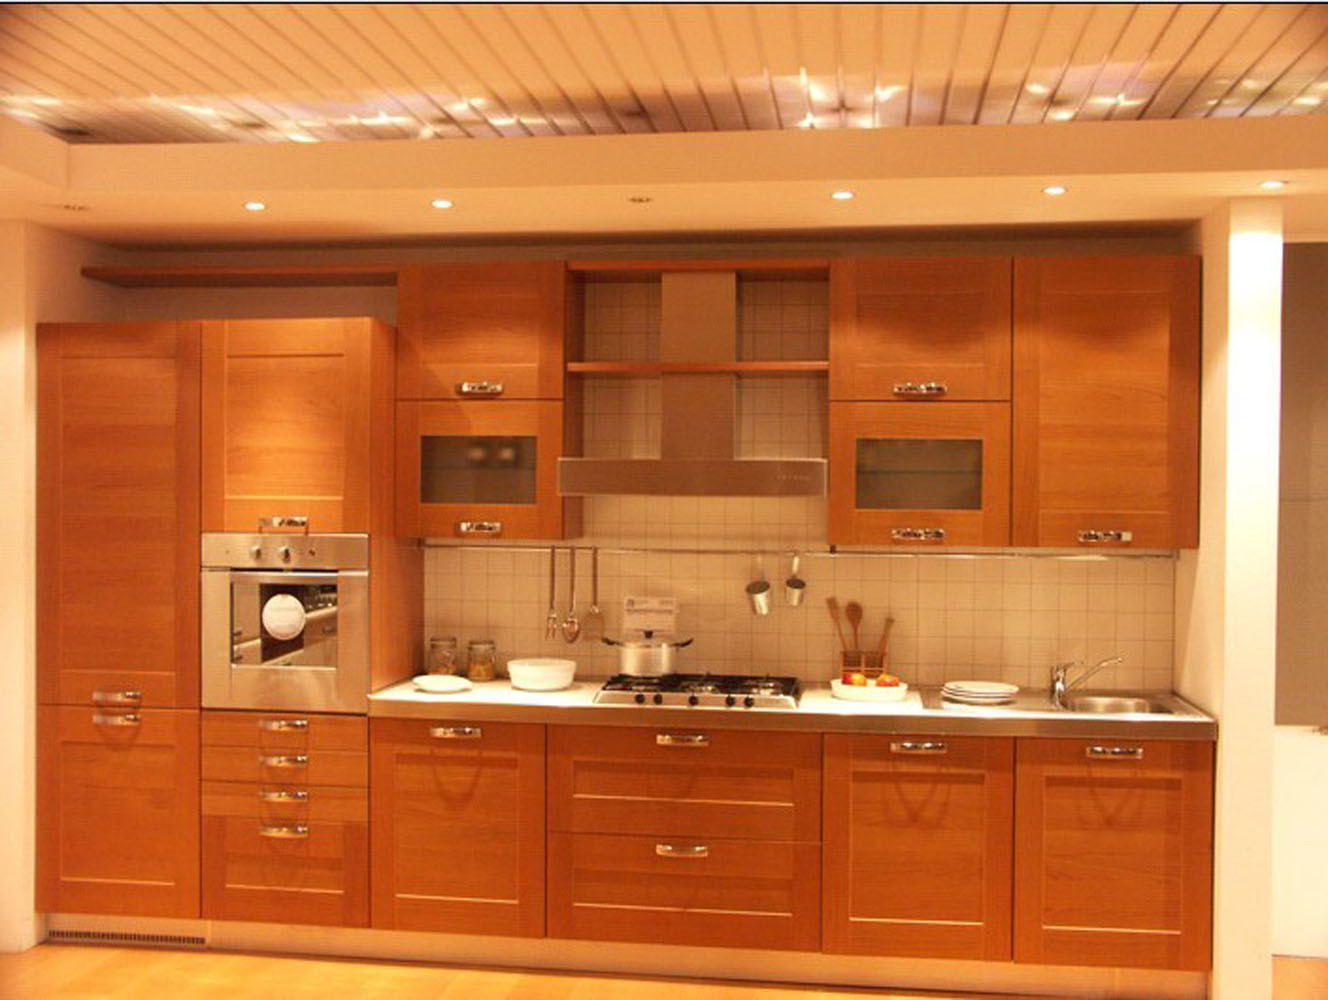 China Hard Maple Shaker Style Kitchen Cabinets in Full ...